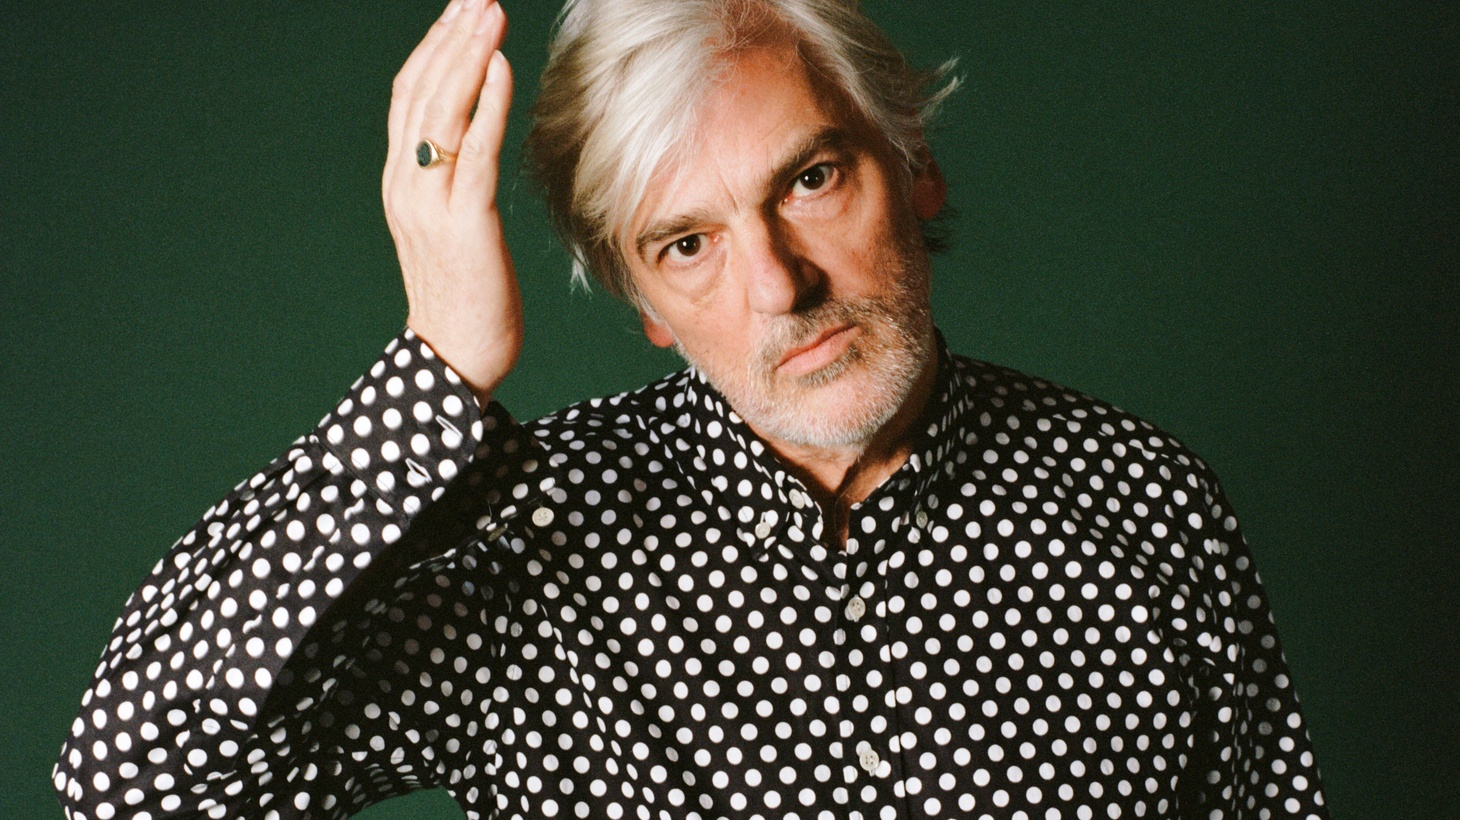 """Robyn Hitchcock doesn't mince words when he writes his songs. Clever and direct, his latest album continues this tradition with """"Somebody To Break Your Heart"""" as Today's Top Tune."""